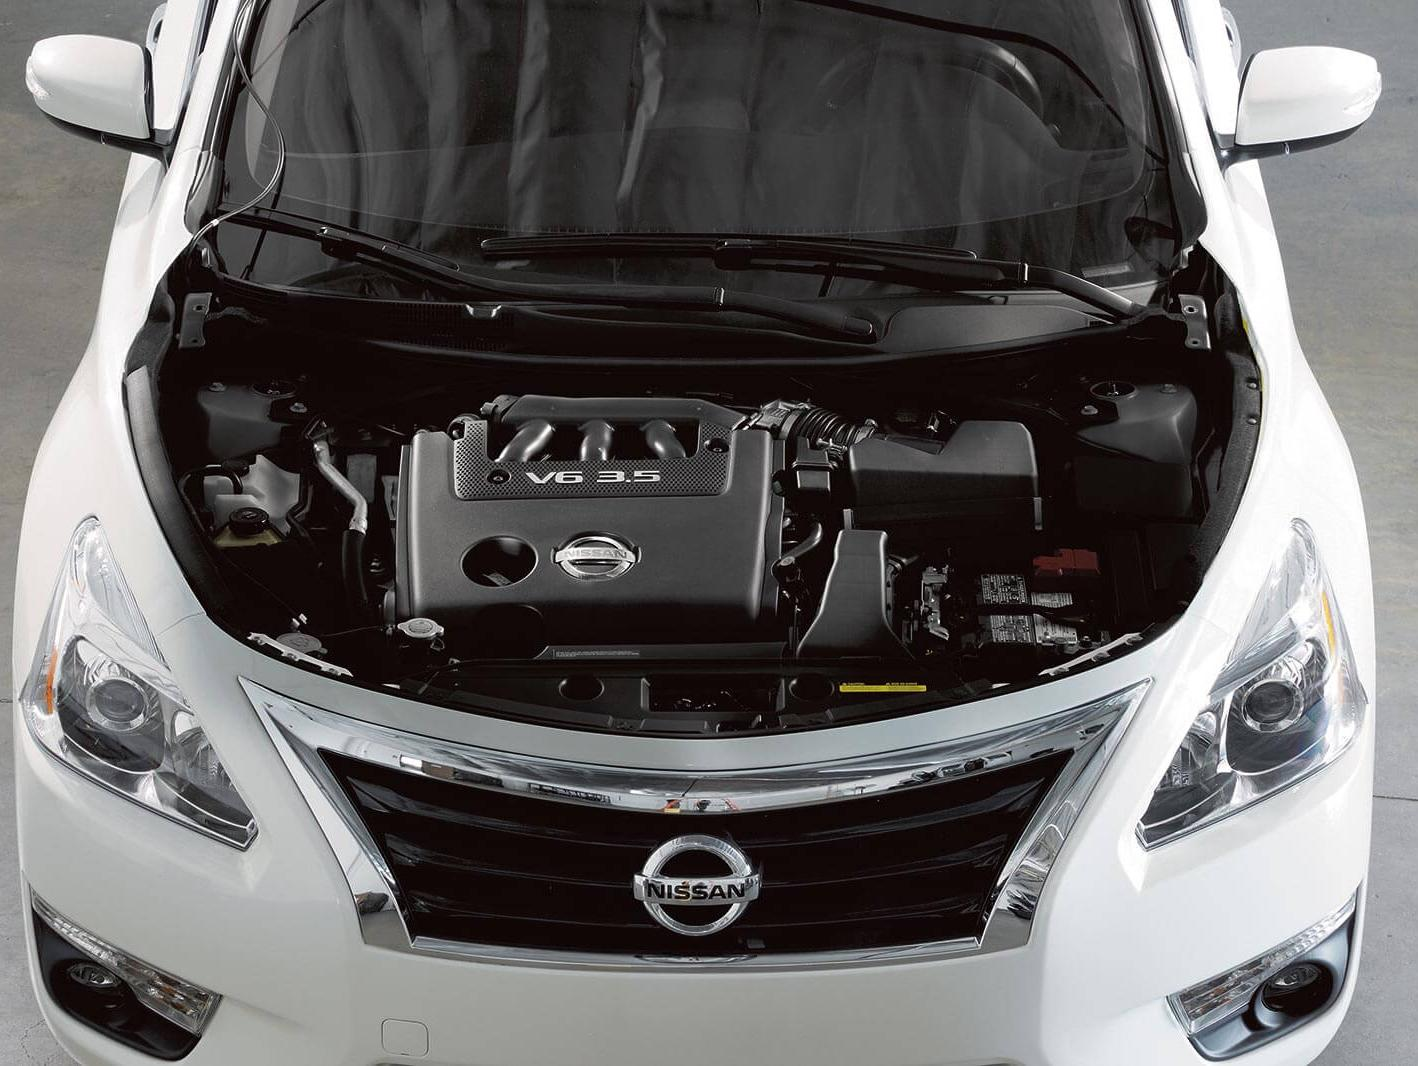 Nissan Vehicle with engine exposed.